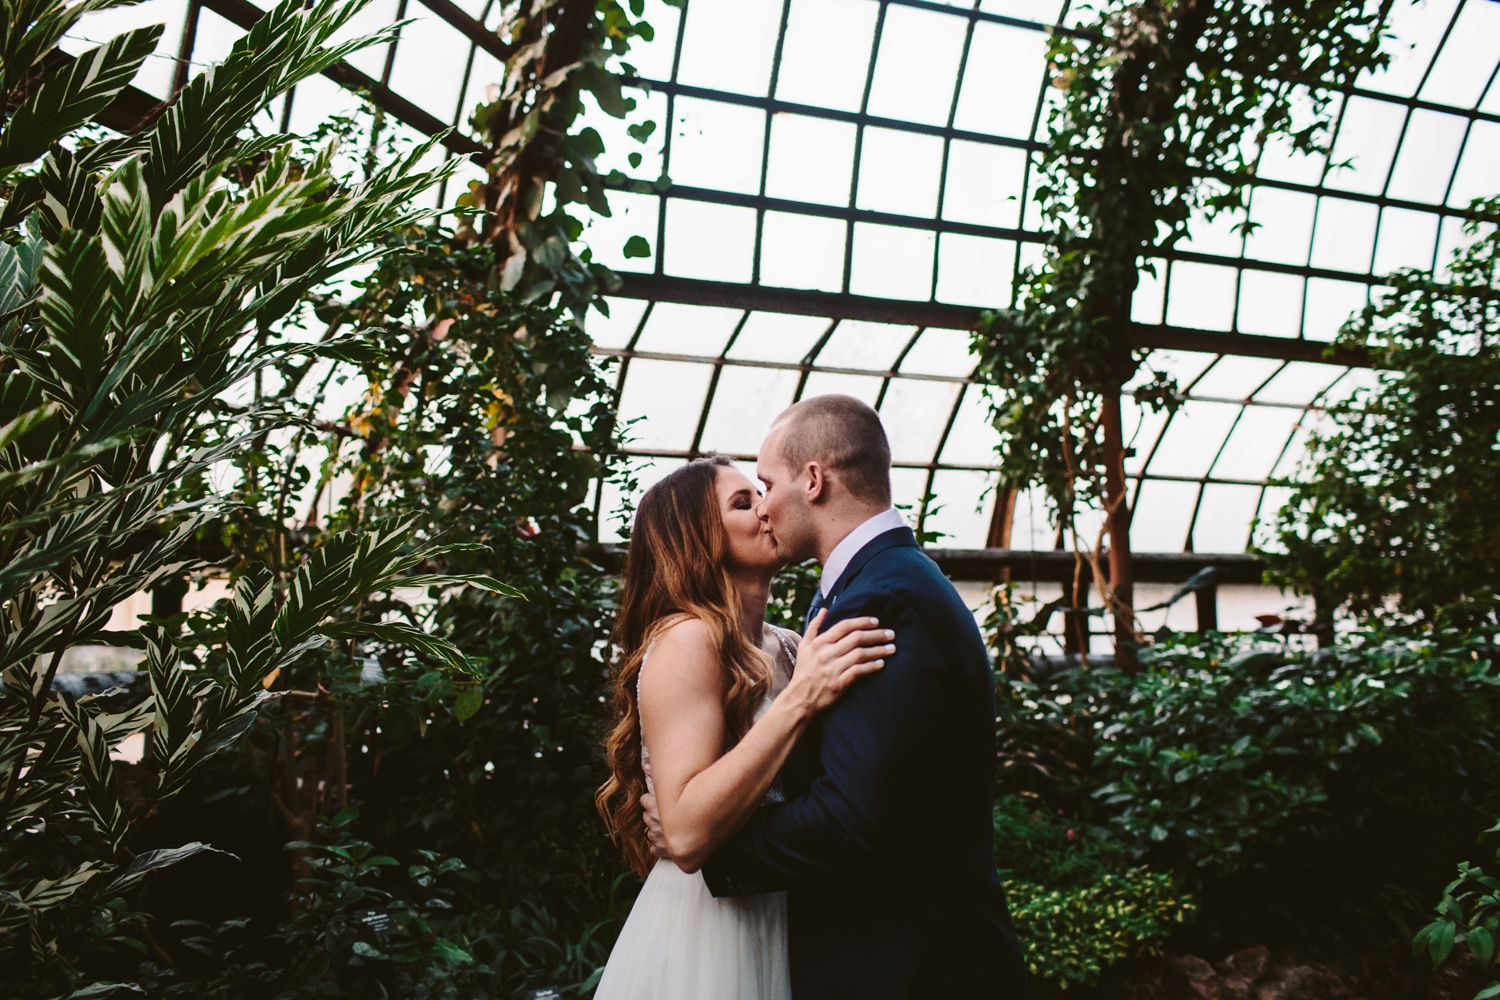 first kiss during elopement in downtown grand rapids michigan greenhouse